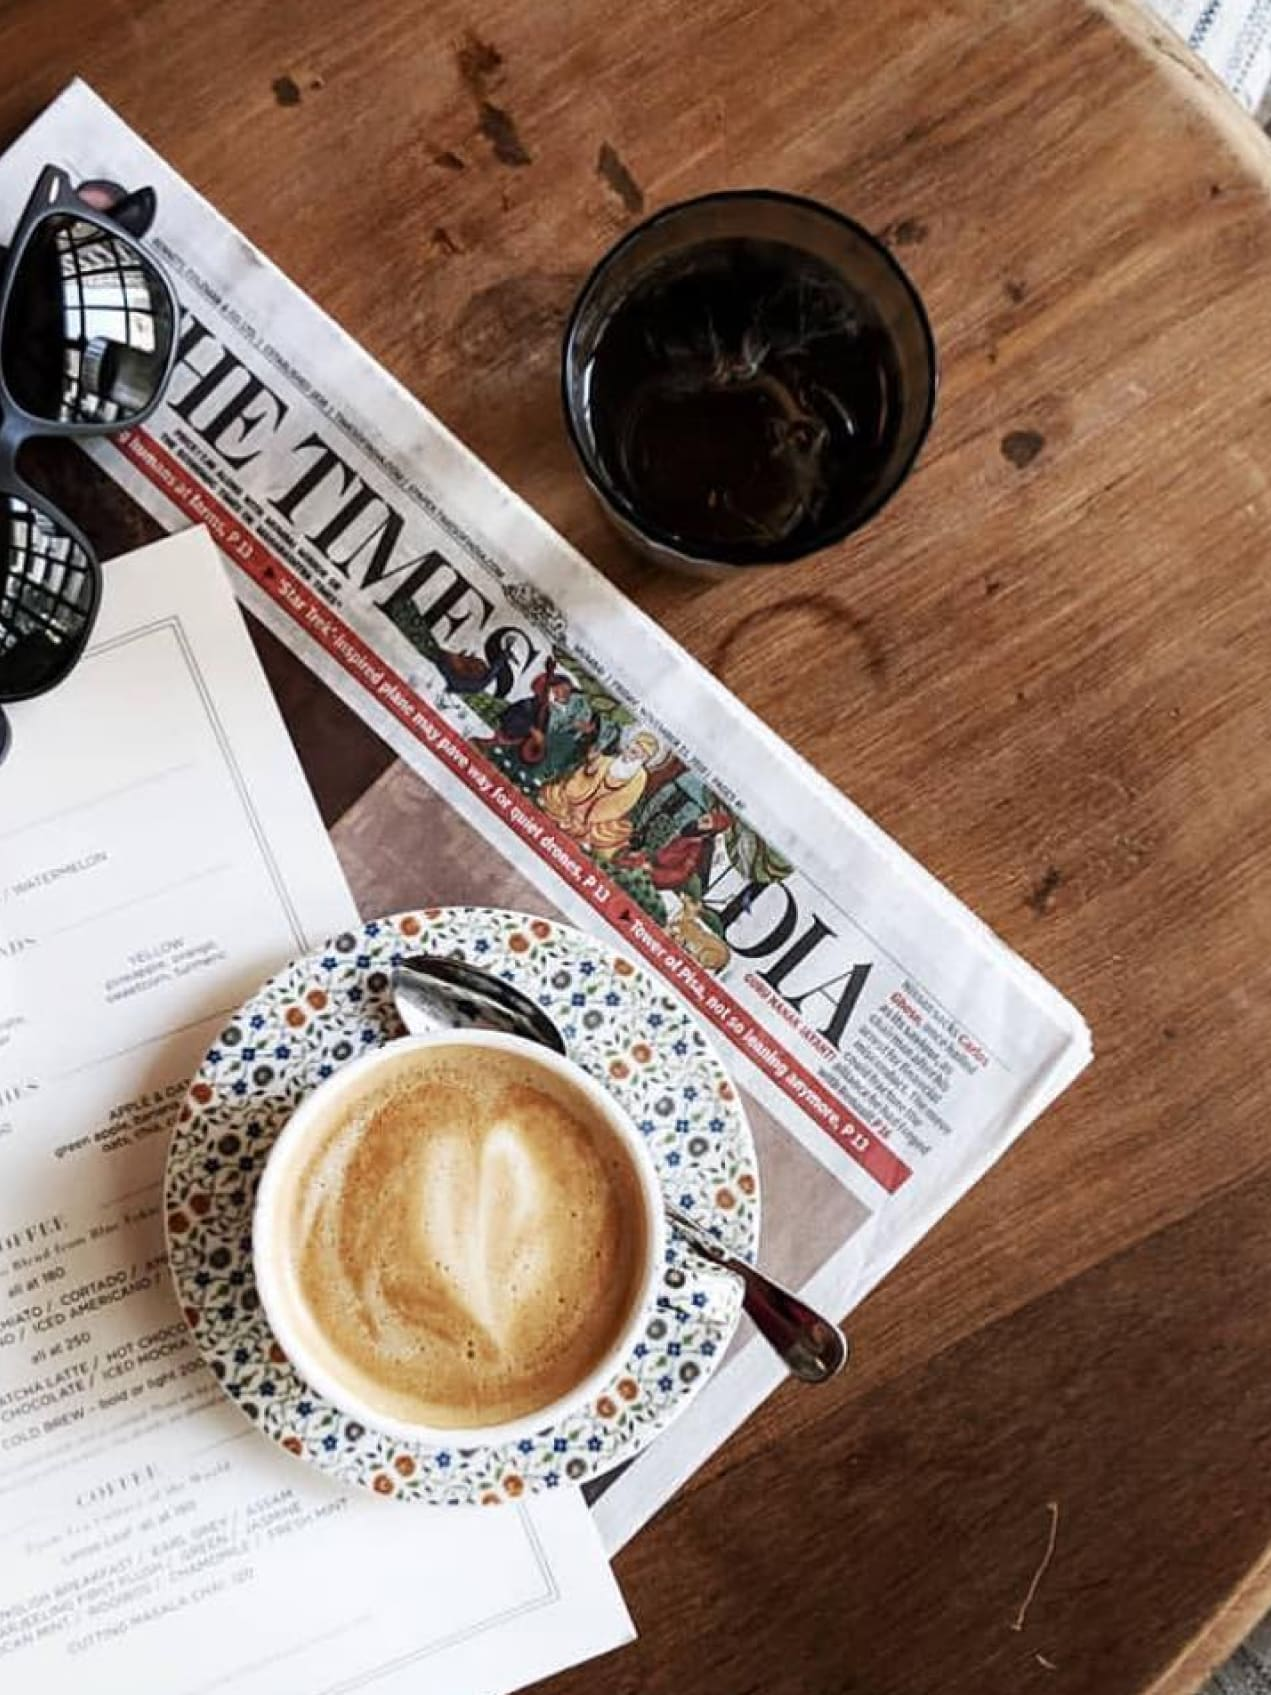 A coffee and a copy of the The Times of India newspaper on a table.